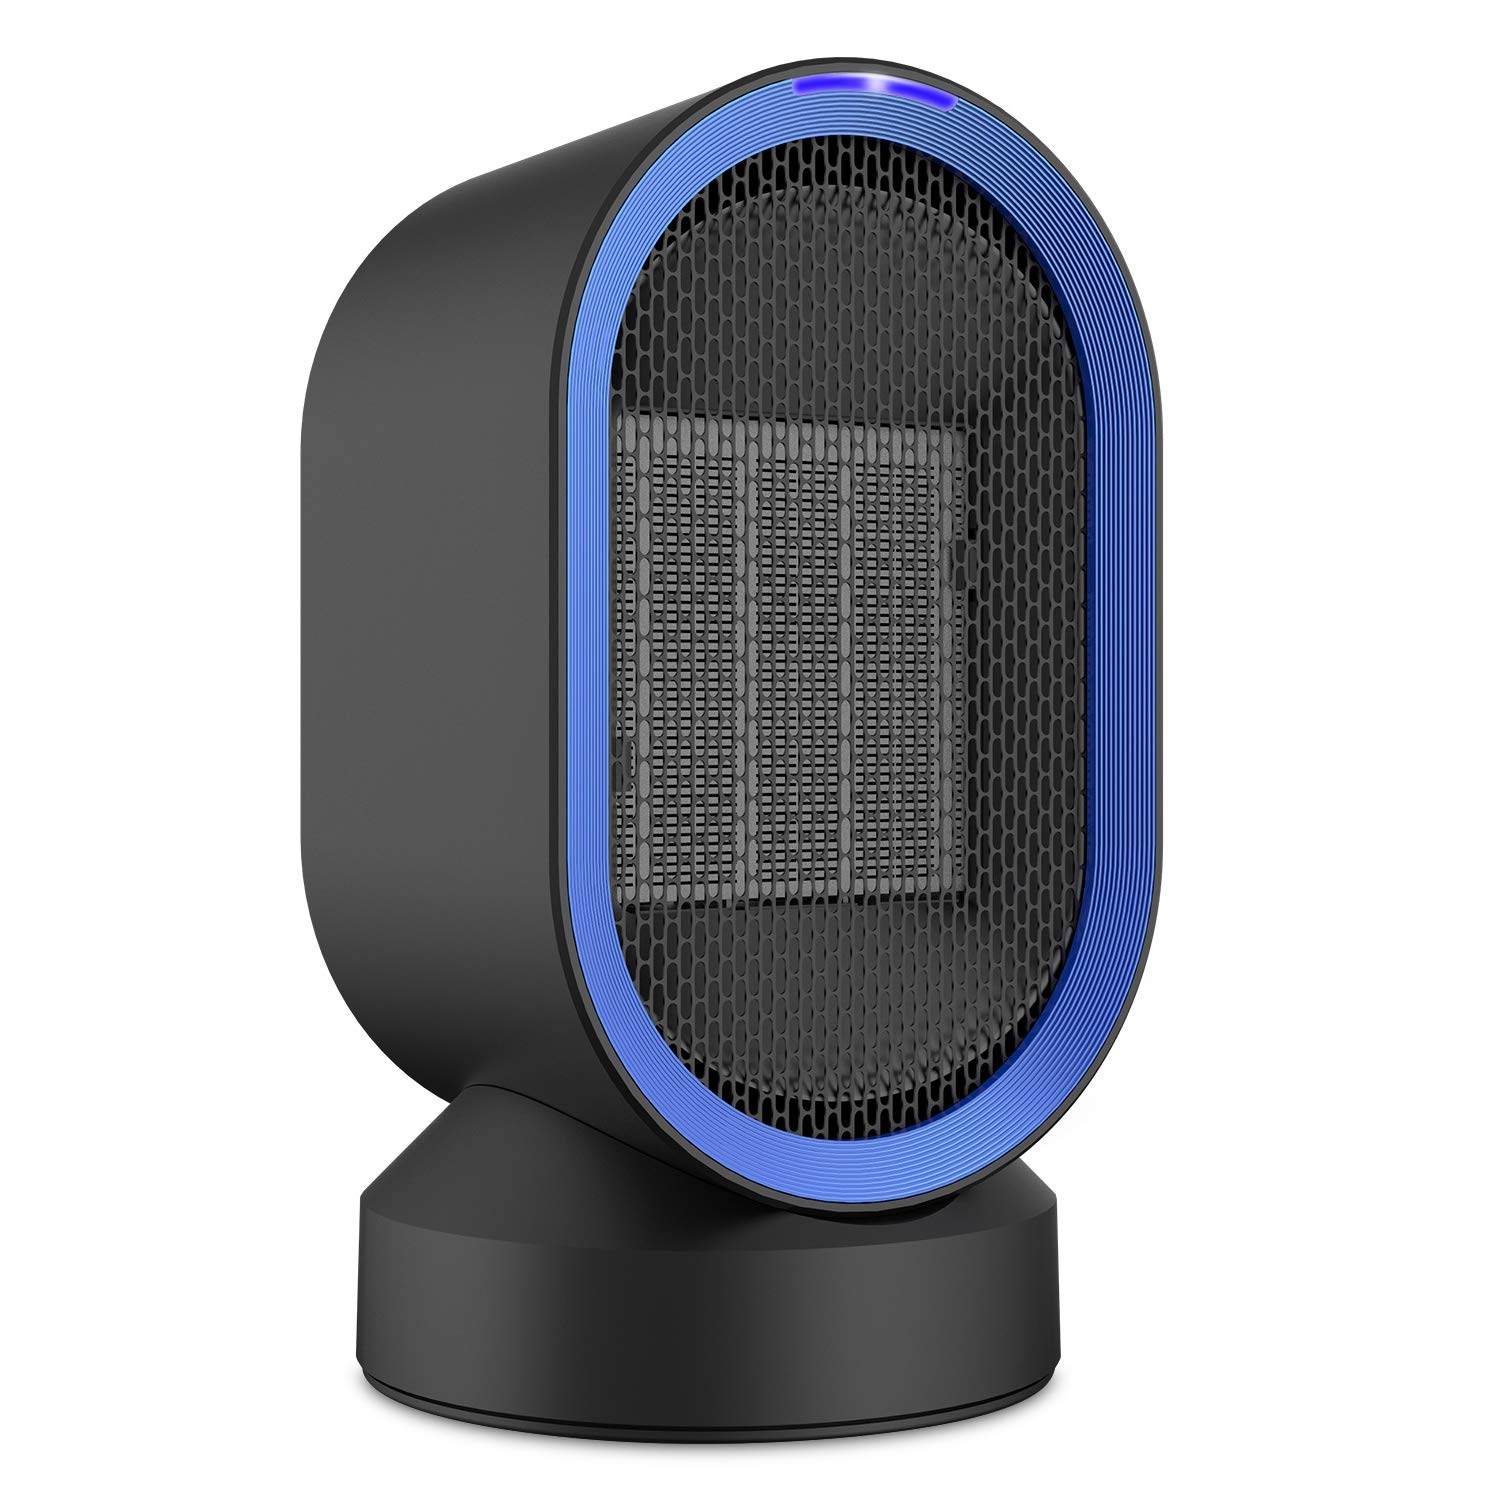 Fitfirst 600 Watt Ceramic Space Heater, Portable Mini Desktop Heater Smart Touch Control,Quick Heat-up, Ultra Quite, Auto- Oscillation for Office Table Home Dorm